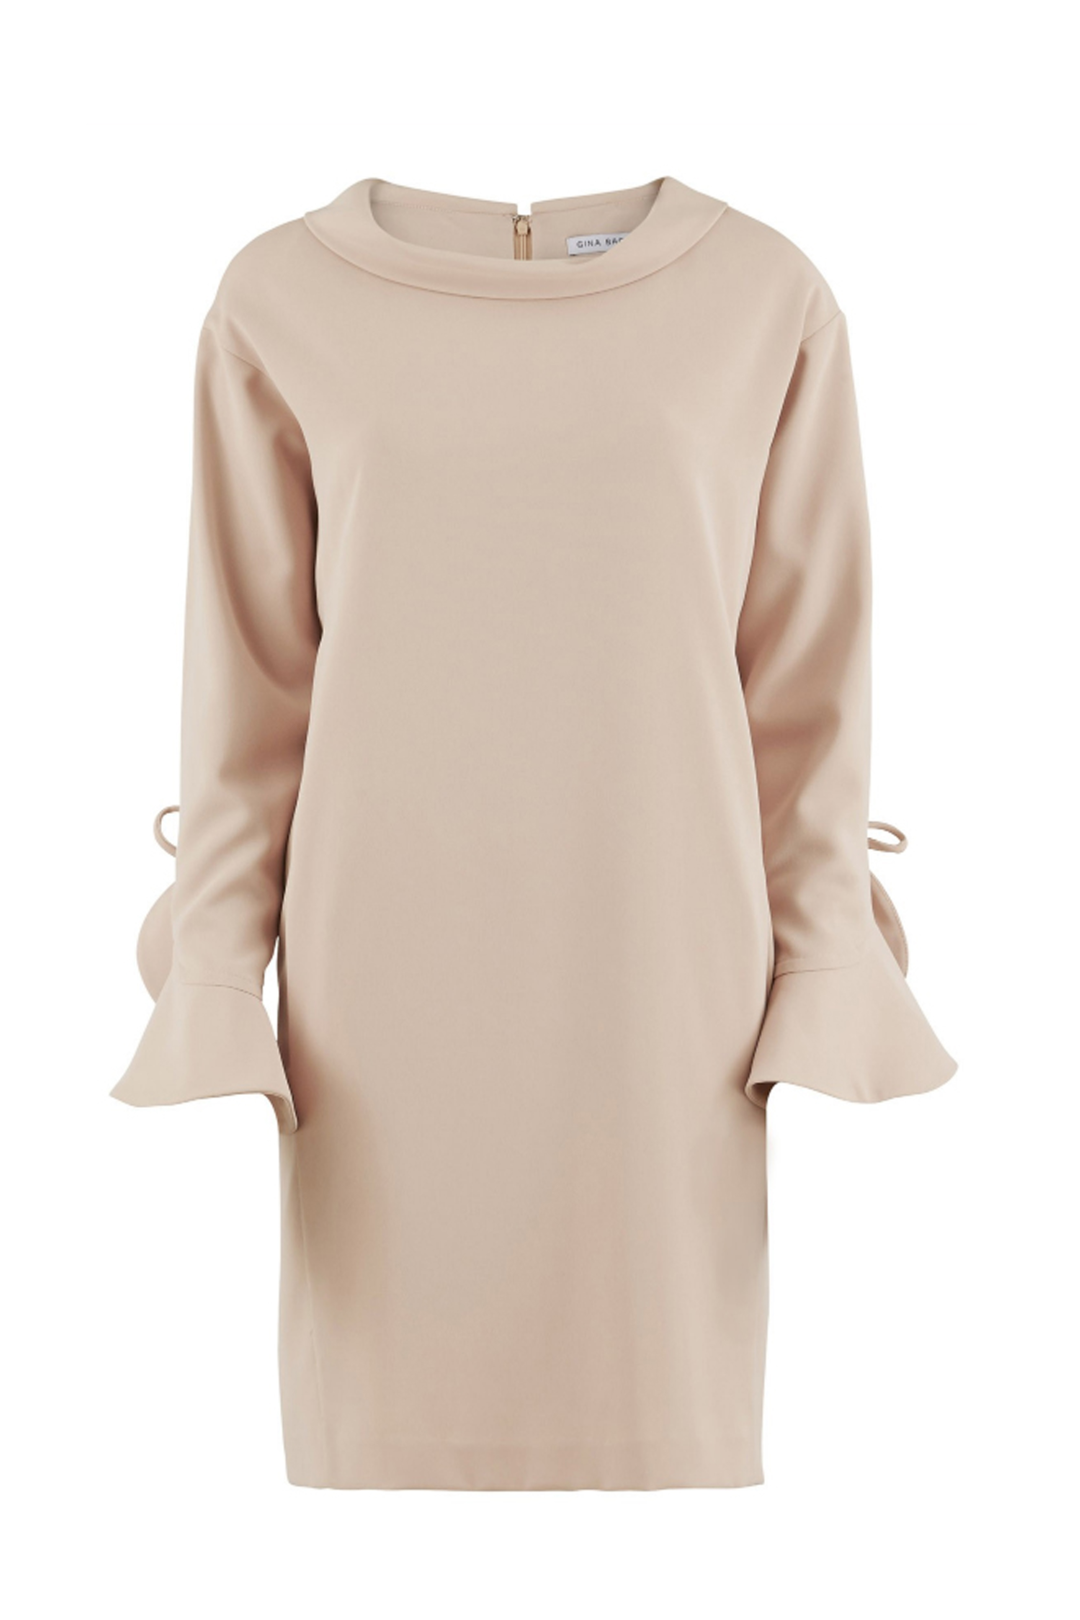 Nude Moss Crepe Dress